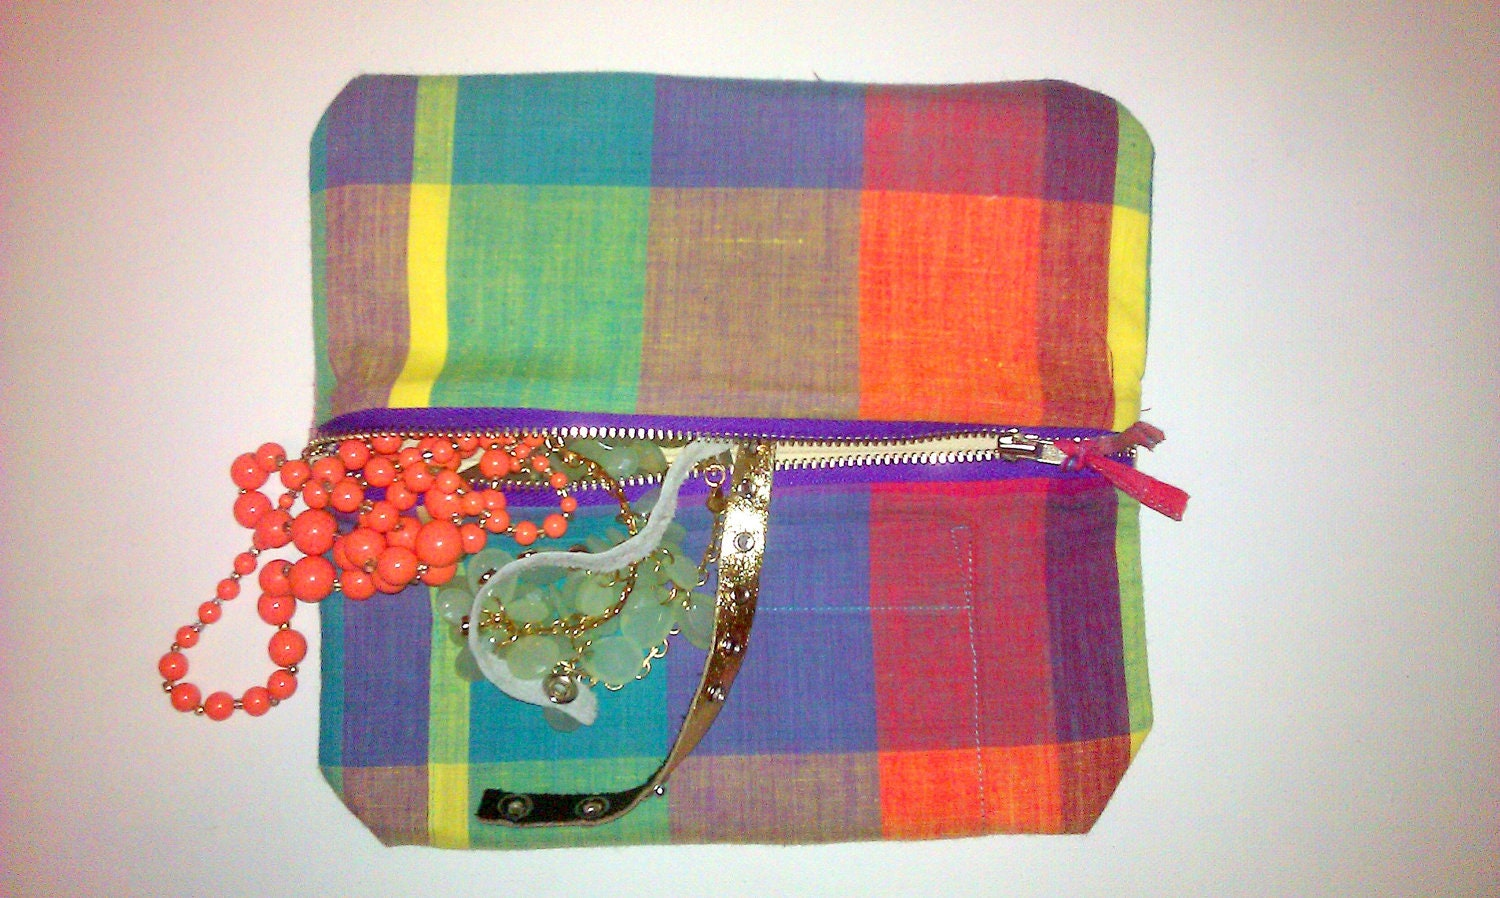 Bright Flannel Patterned Makeup/Jewelry Bag Fully Lined